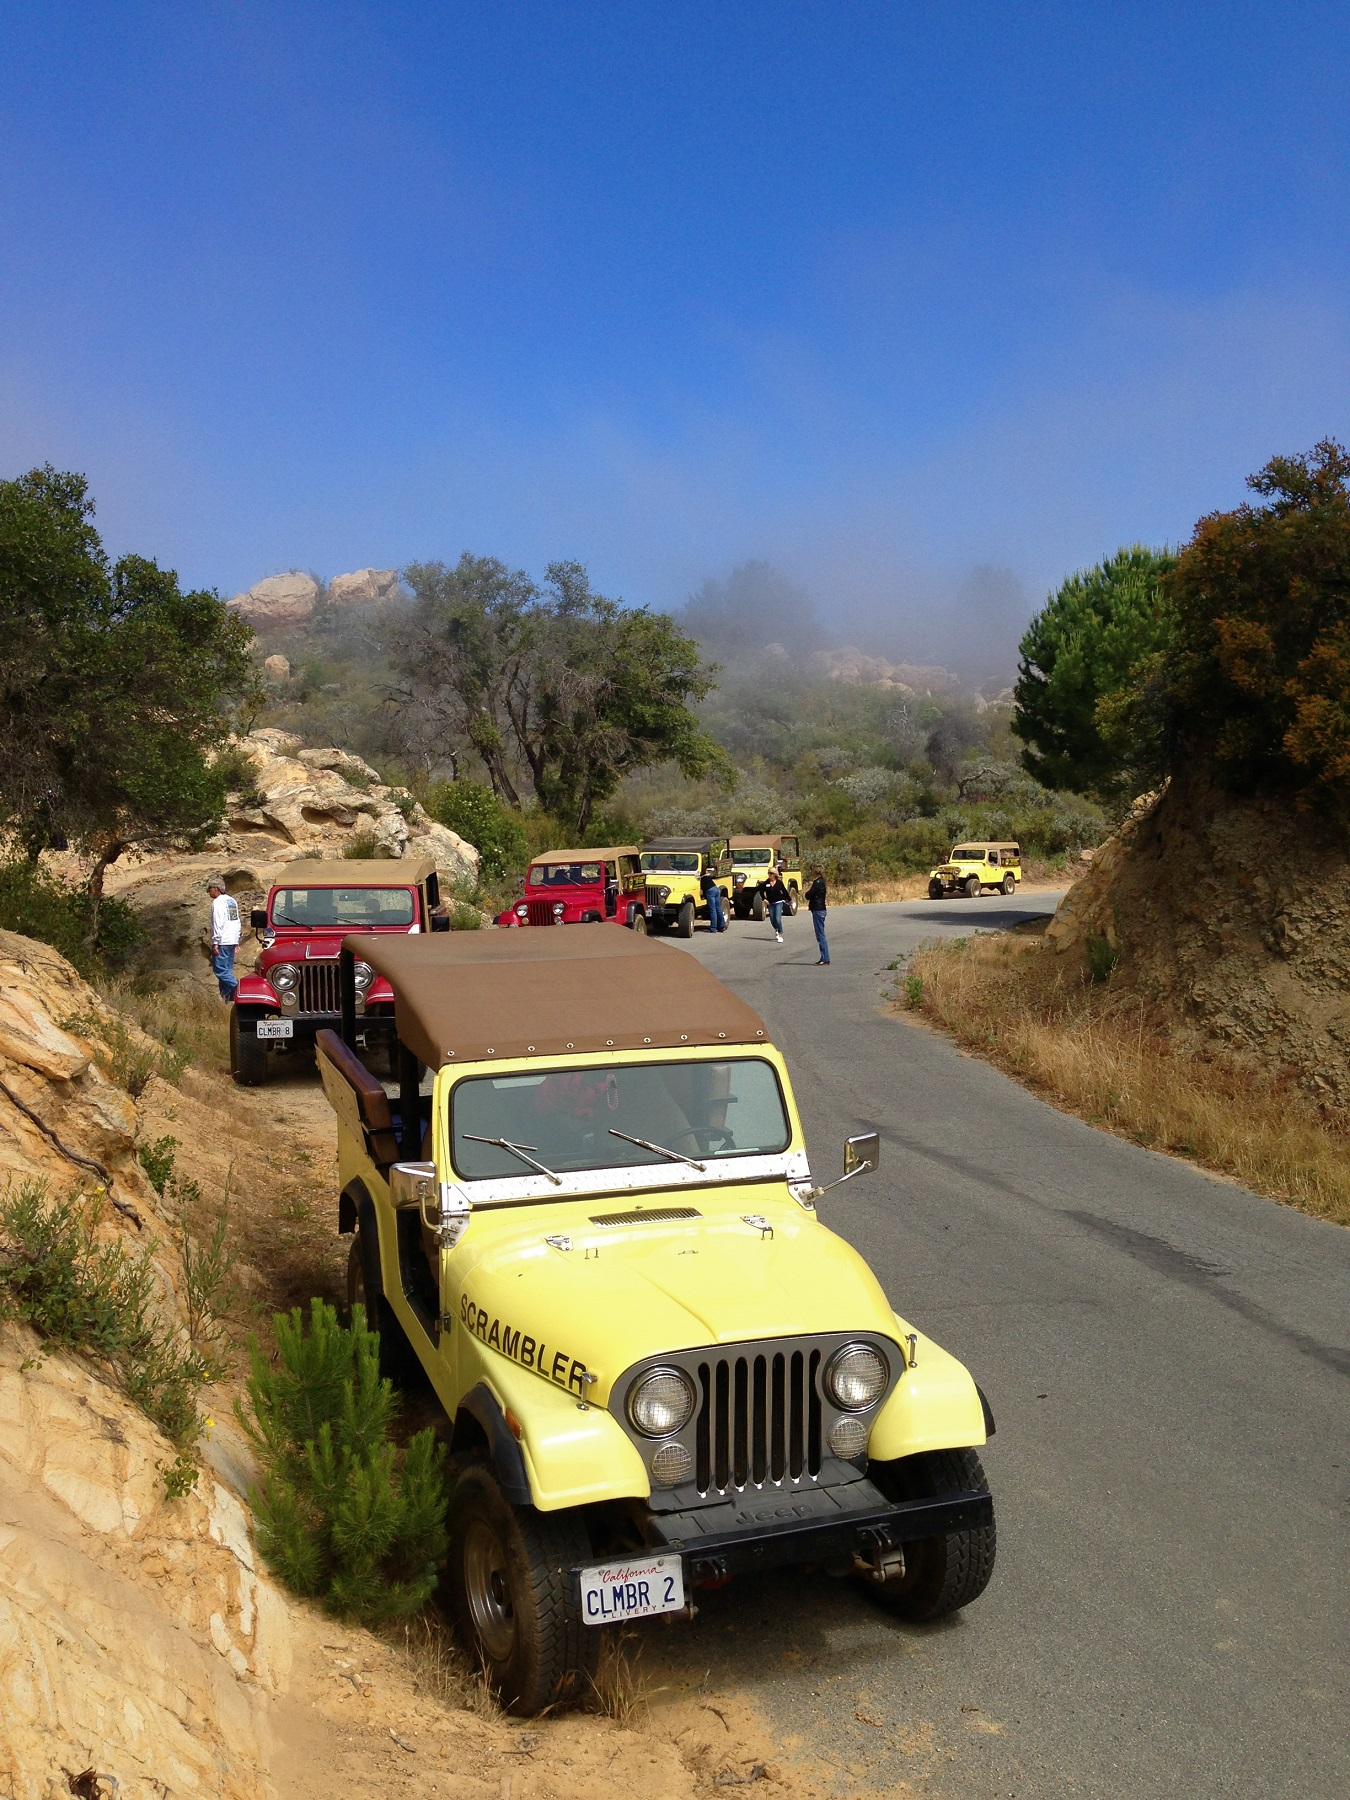 Yellow and Red Jeeps at the side of a California Mountain Road